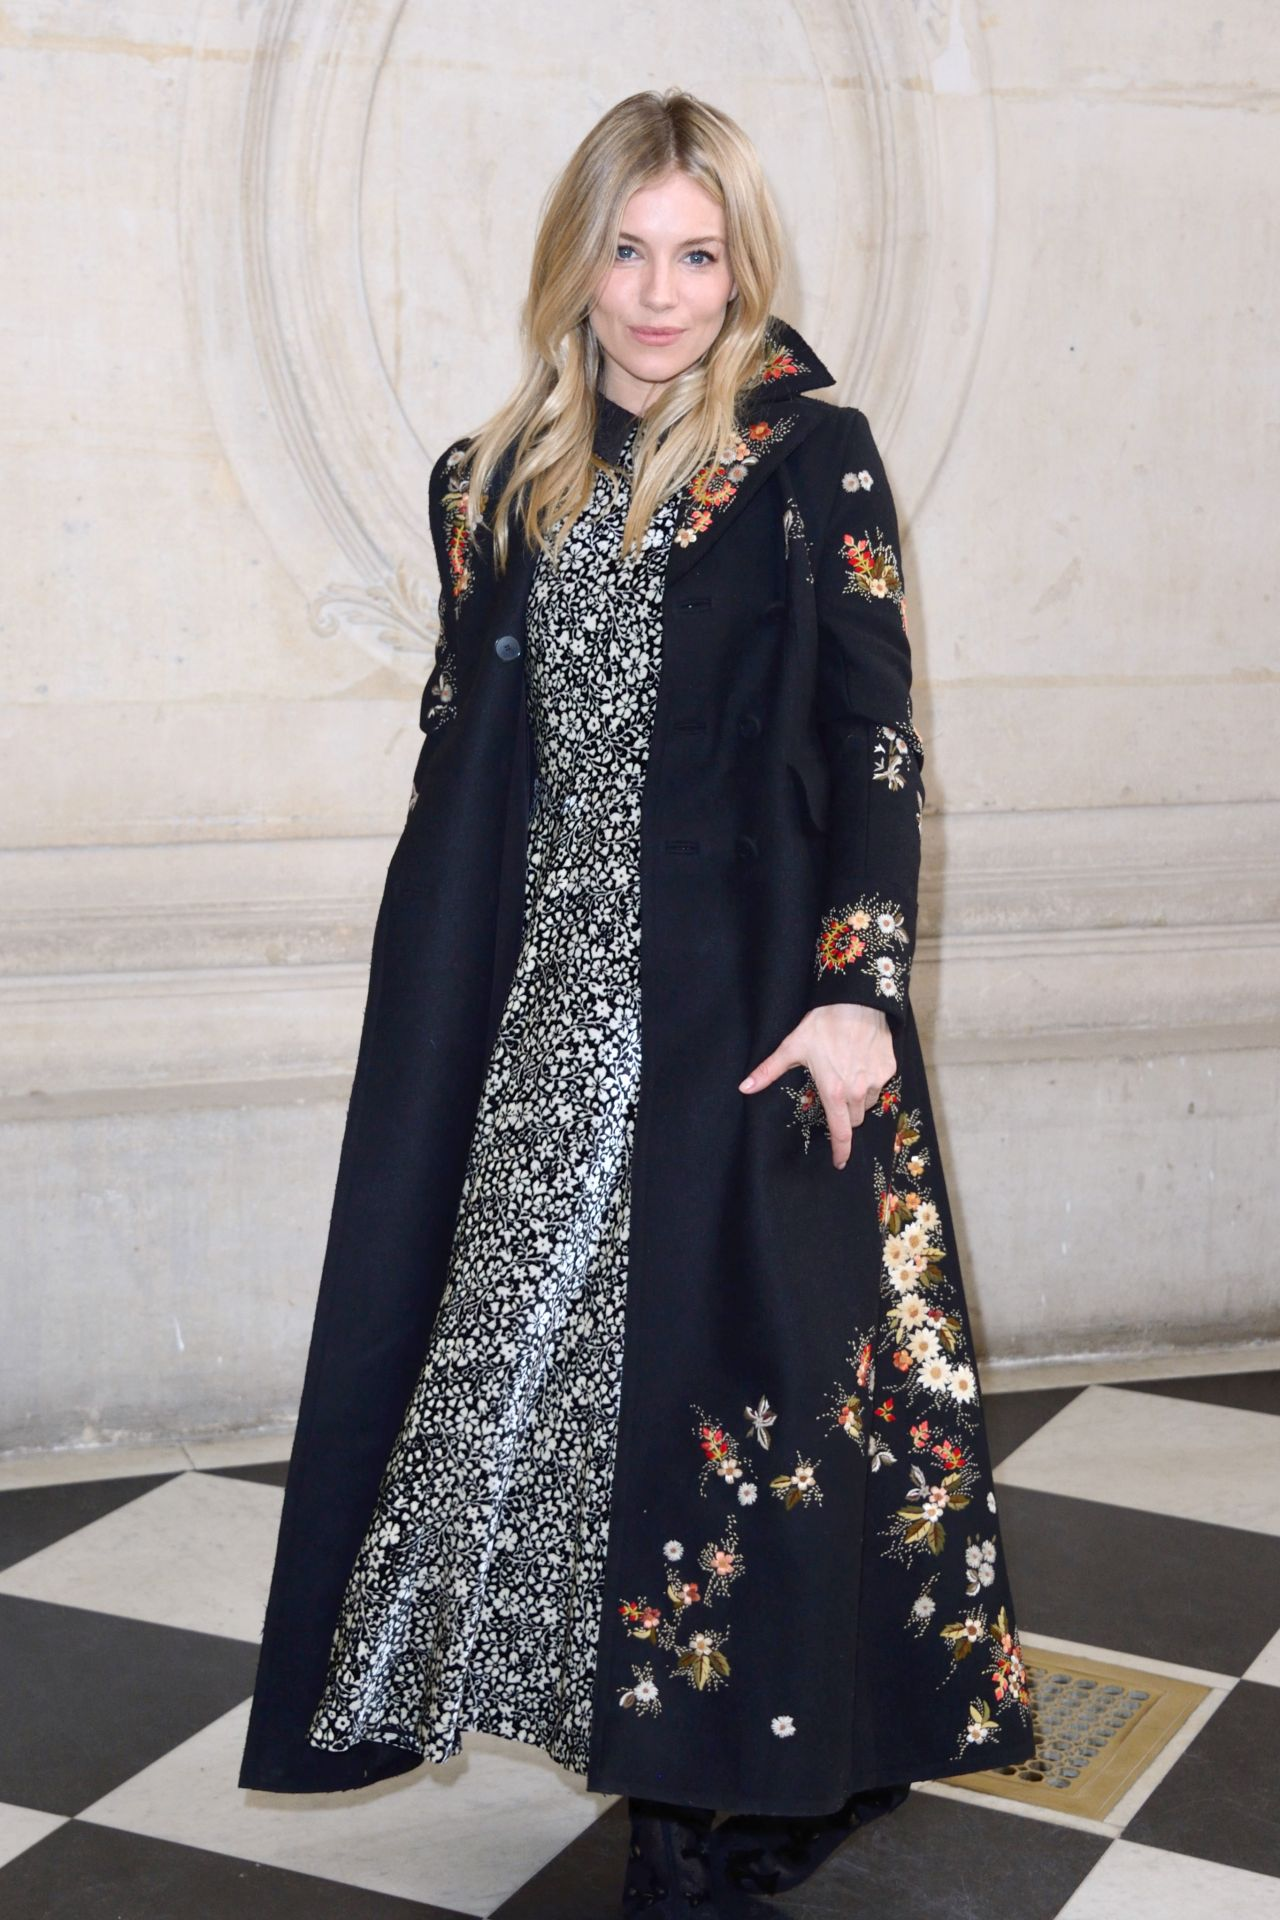 sienna miller at paris fashion week christian dior show 3 3 2017. Black Bedroom Furniture Sets. Home Design Ideas